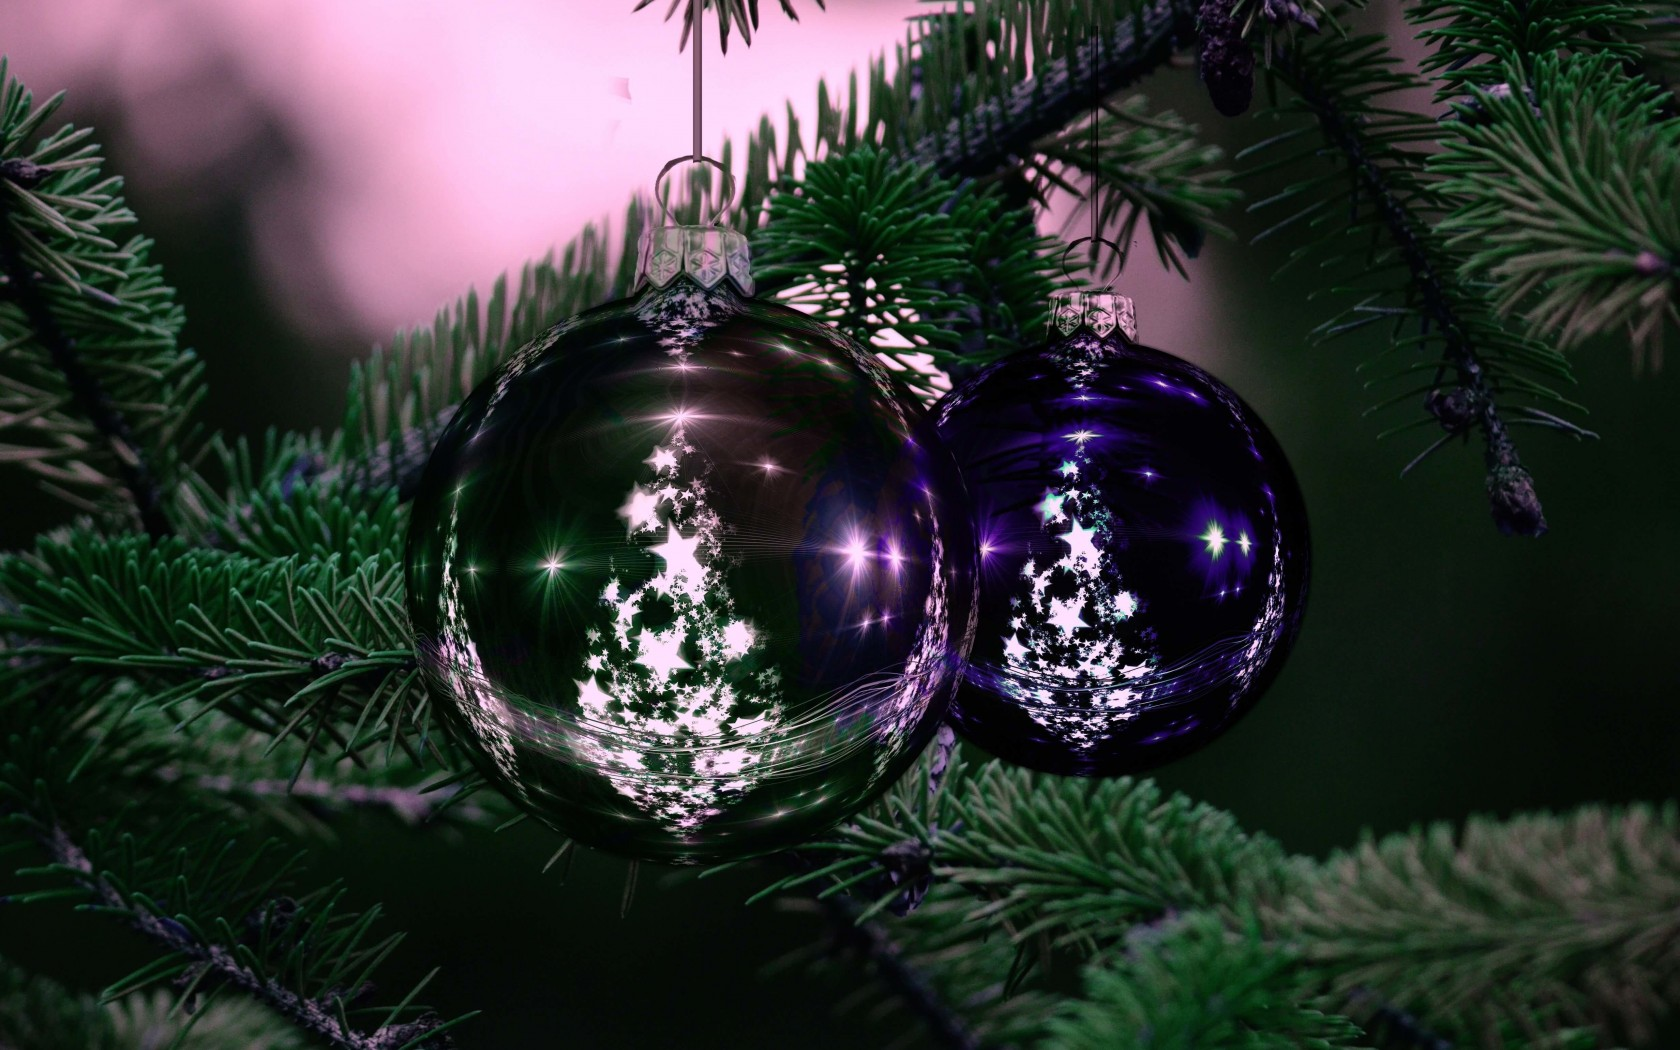 Beautiful Christmas Tree Ornaments Wallpaper for Desktop 1680x1050